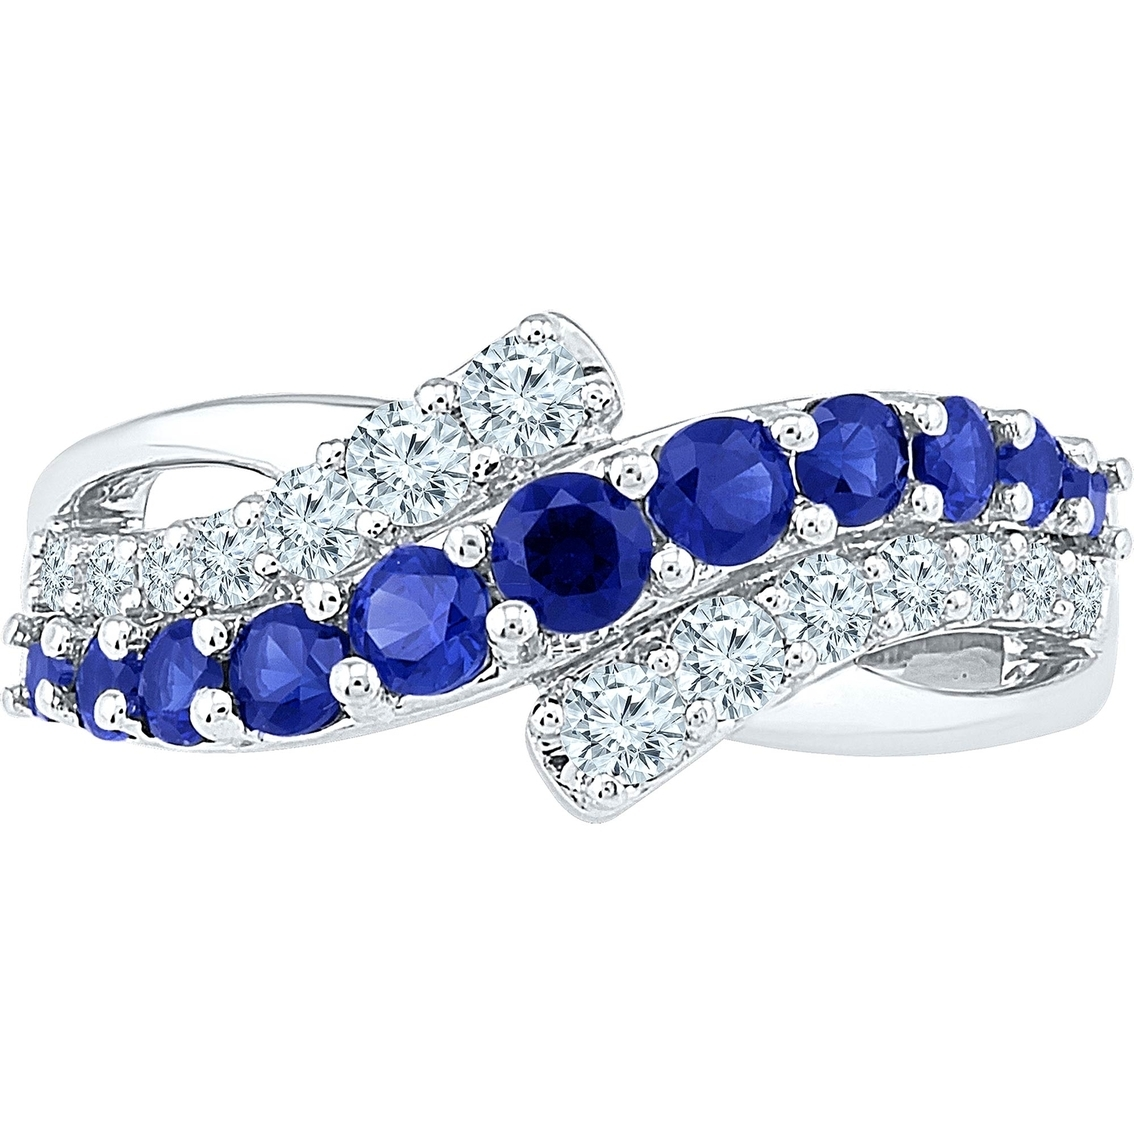 10K White Gold Lab Created Blue And White Sapphire Ring | Gemstone Throughout Most Popular Lab Created Blue Sapphire Five Stone Anniversary Bands In 10K White Gold (View 1 of 15)